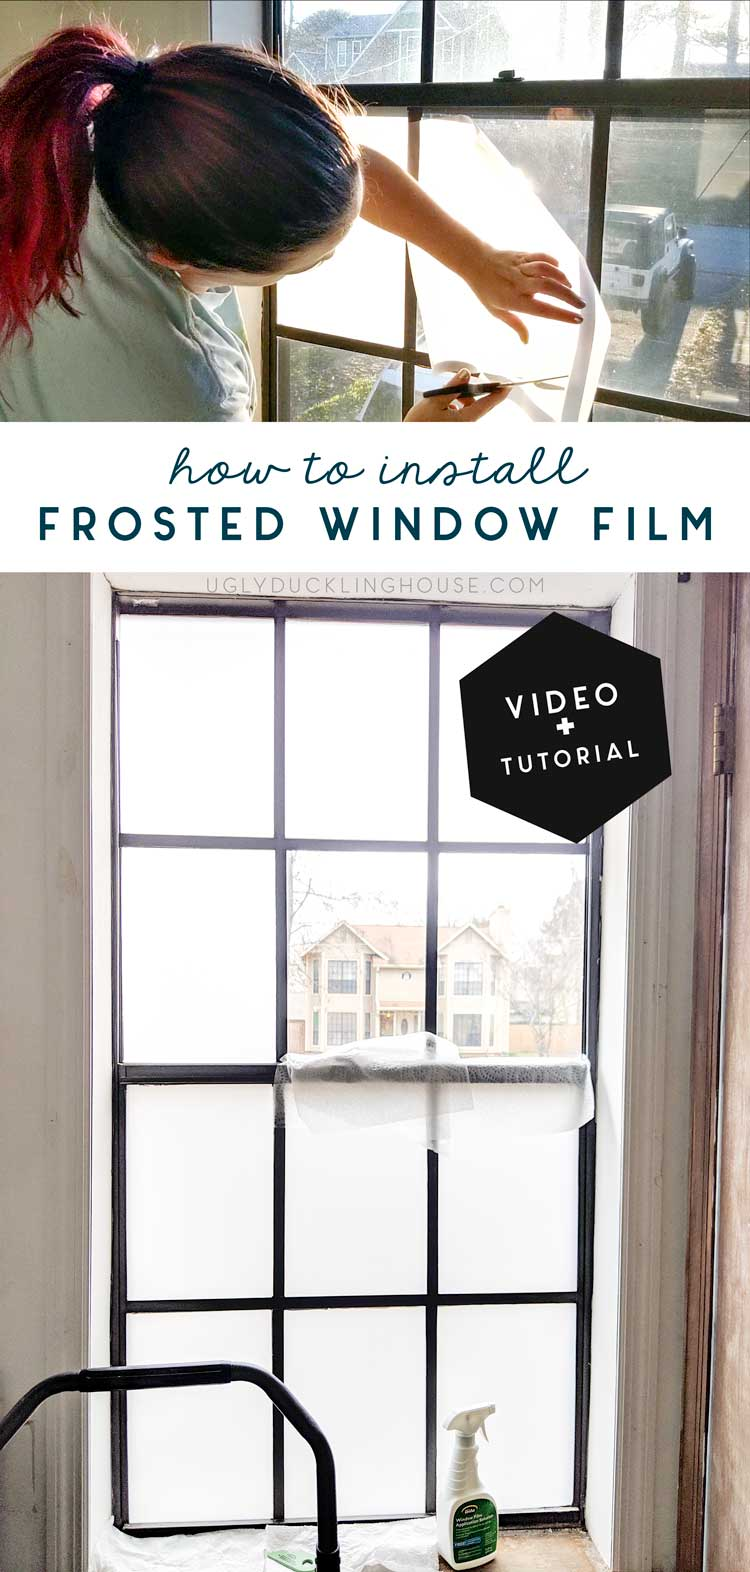 How I Installed Frosted Window Film — and Got the Dog to